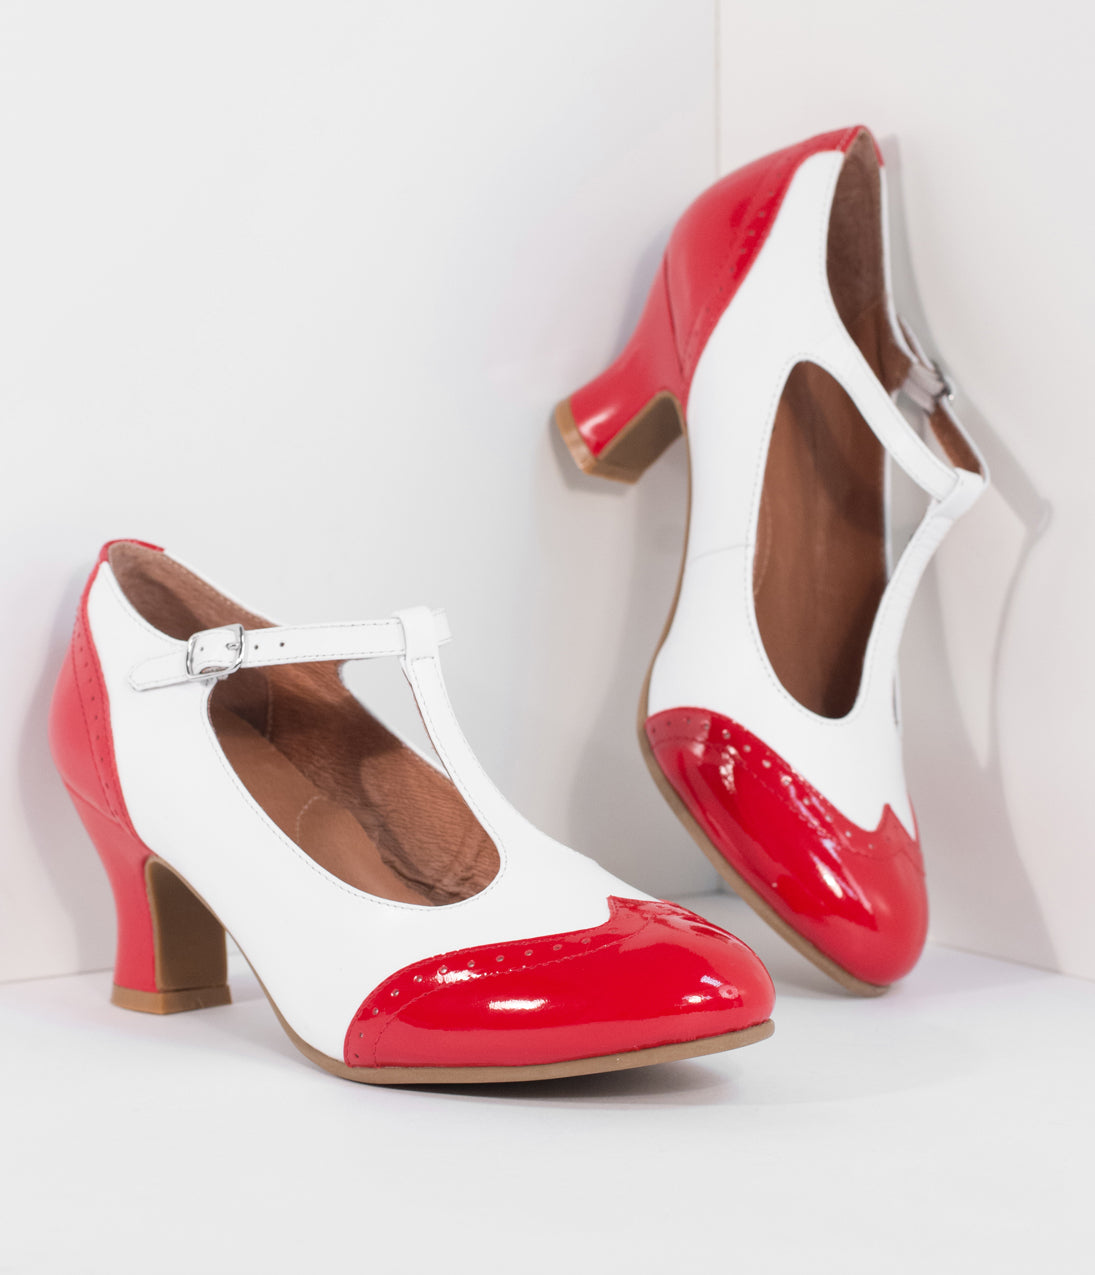 1920s Style Shoes Royal Vintage 1920S Red  White Two-Tone Leather T-Strap Heels $160.00 AT vintagedancer.com